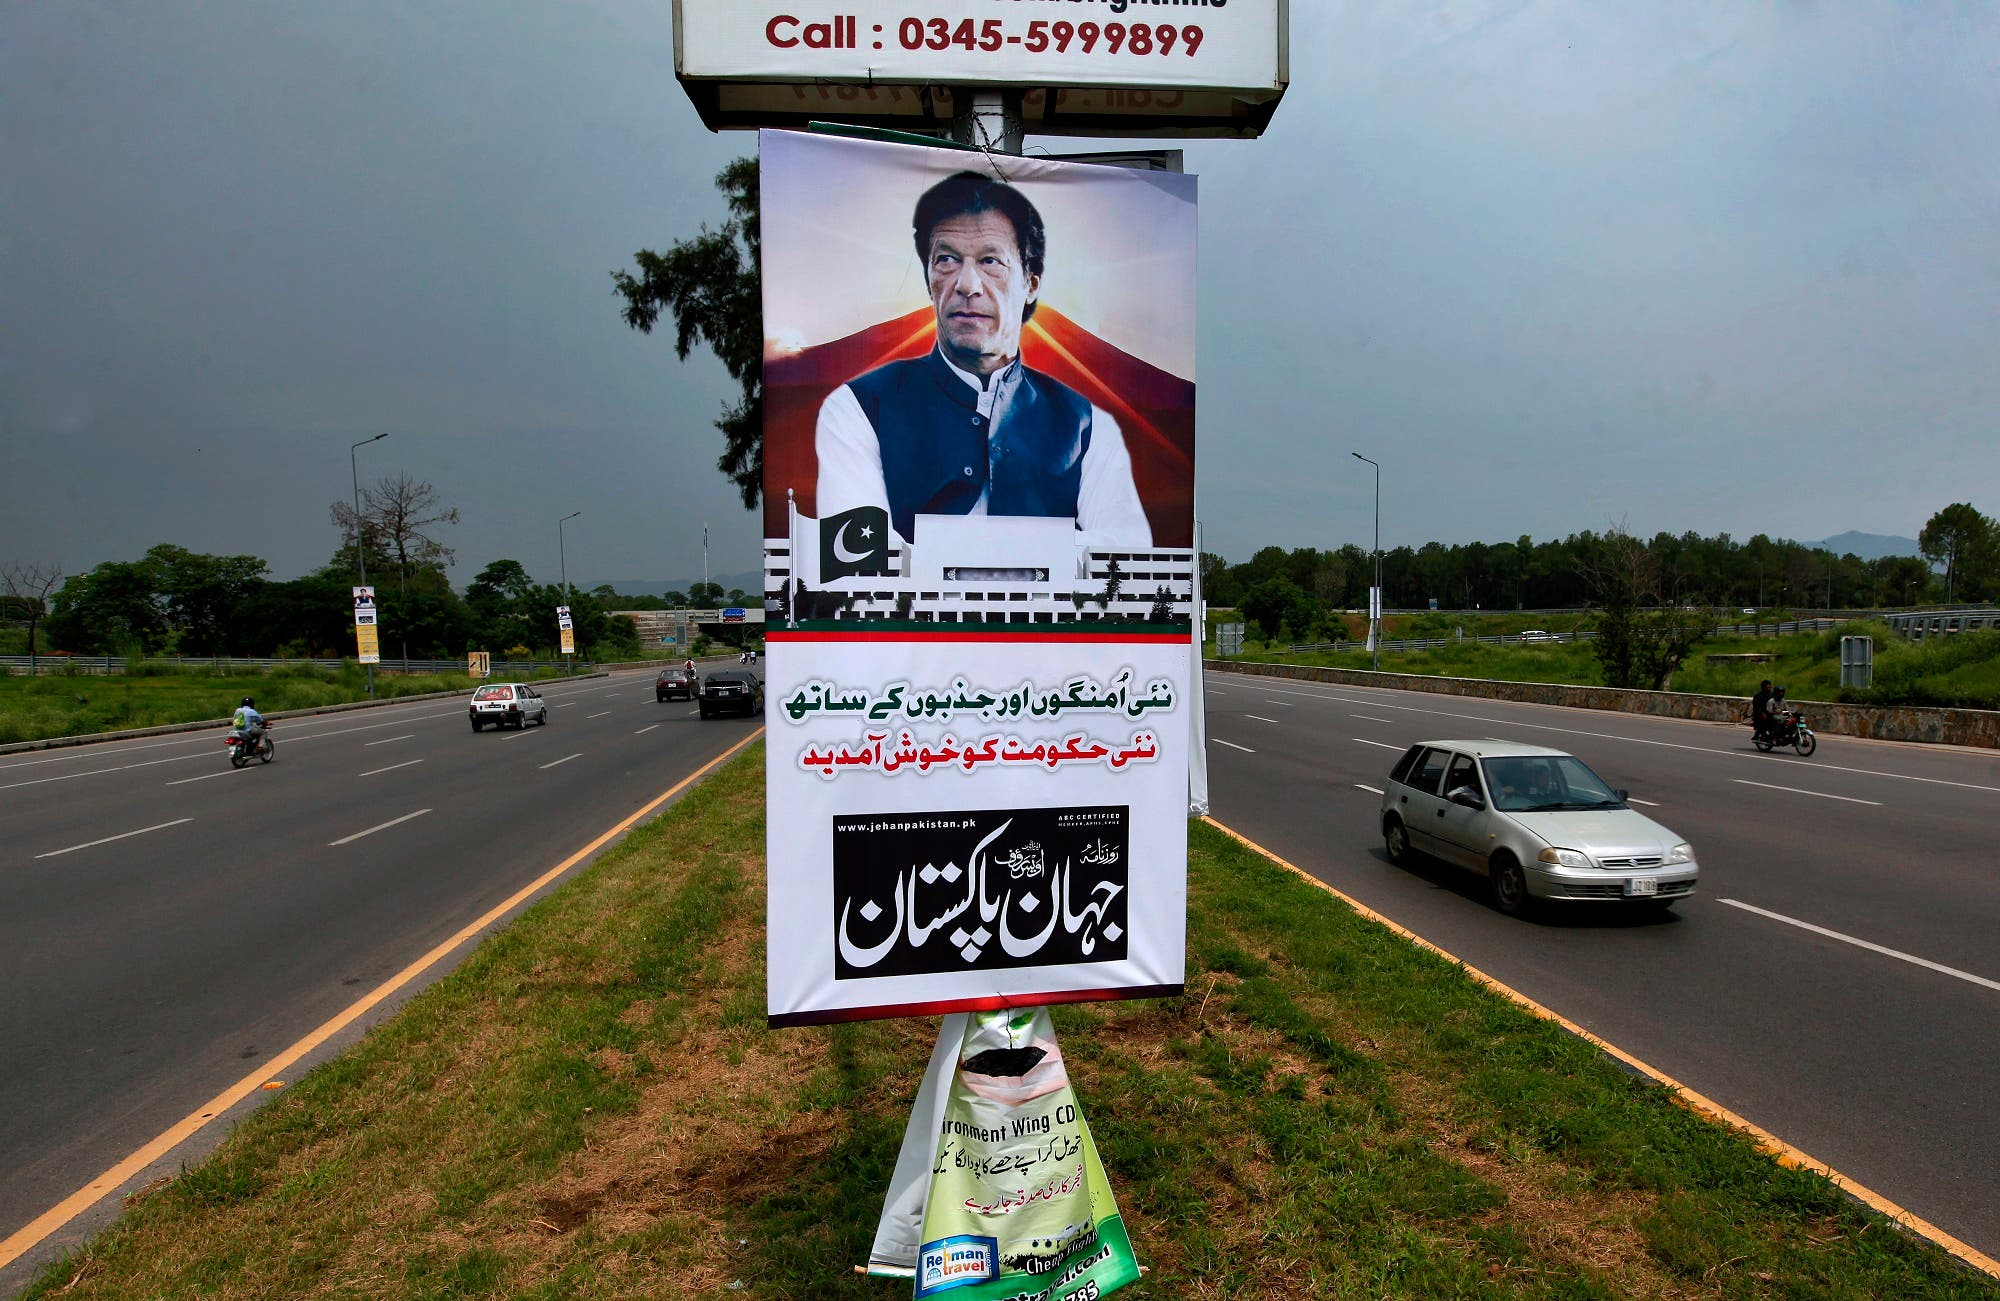 A poster with images of Imran Khan is displayed at a highway in Islamabad on Aug. 18, 2018. (AP)